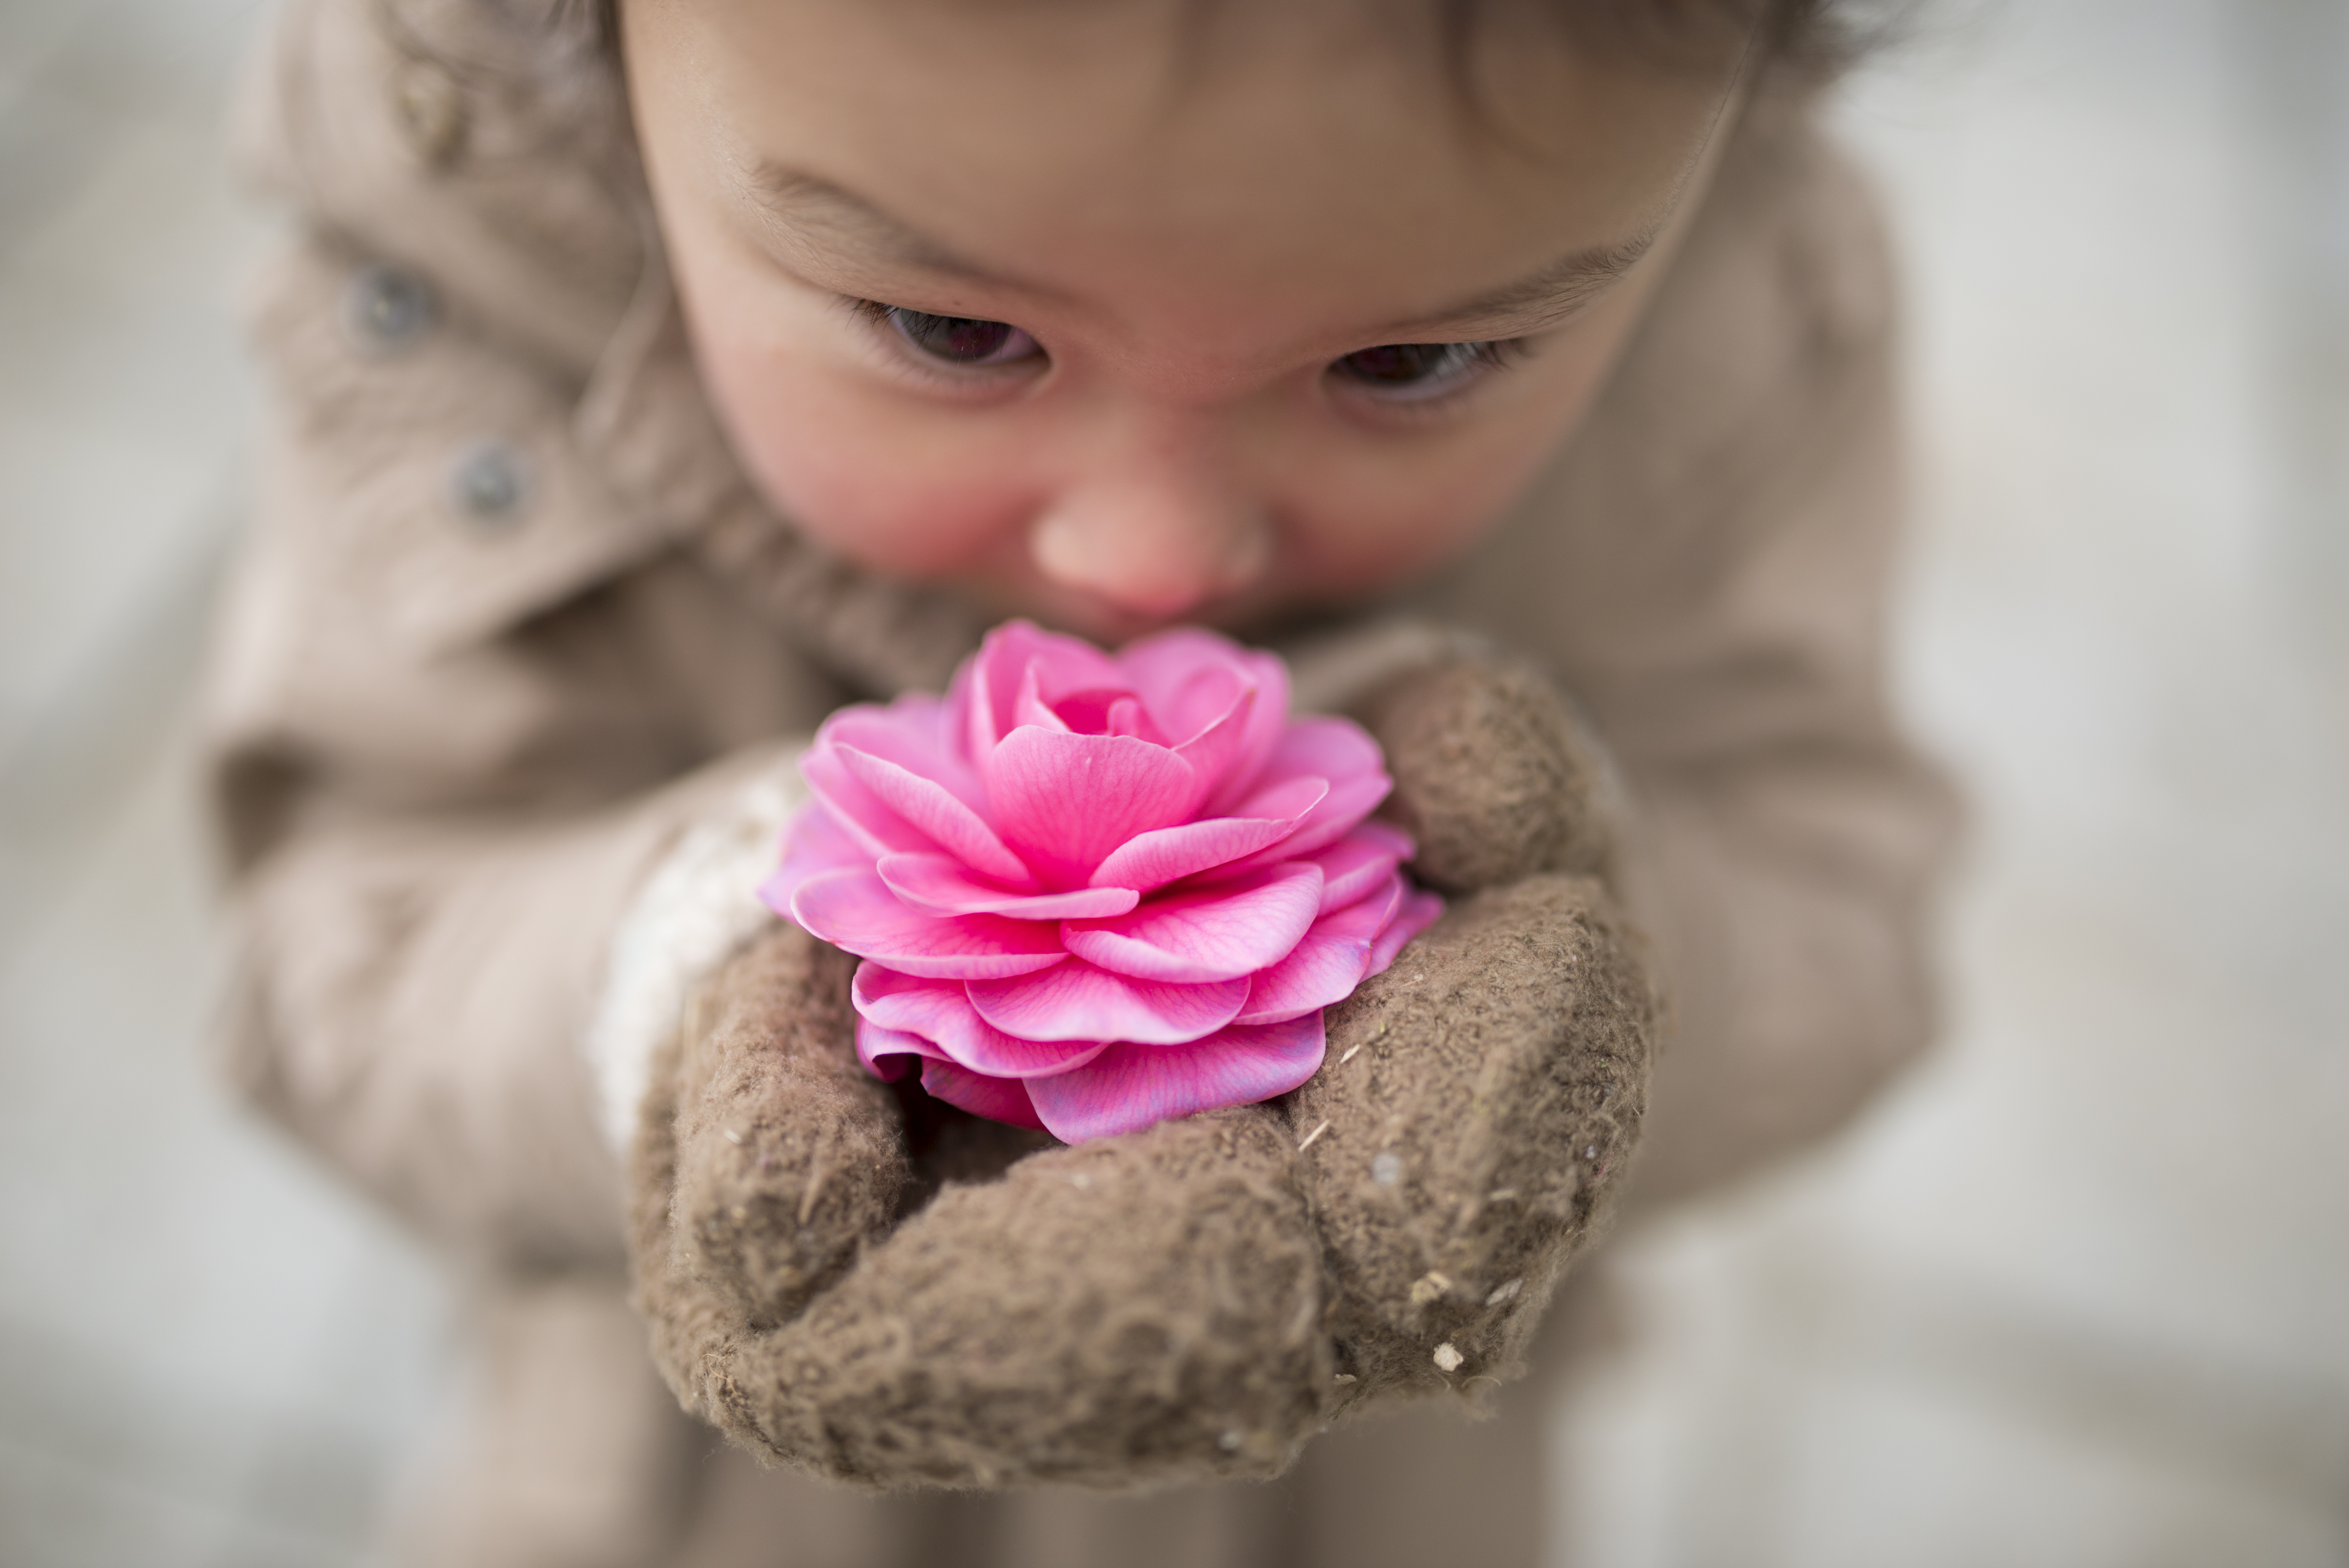 Child smelling a rose